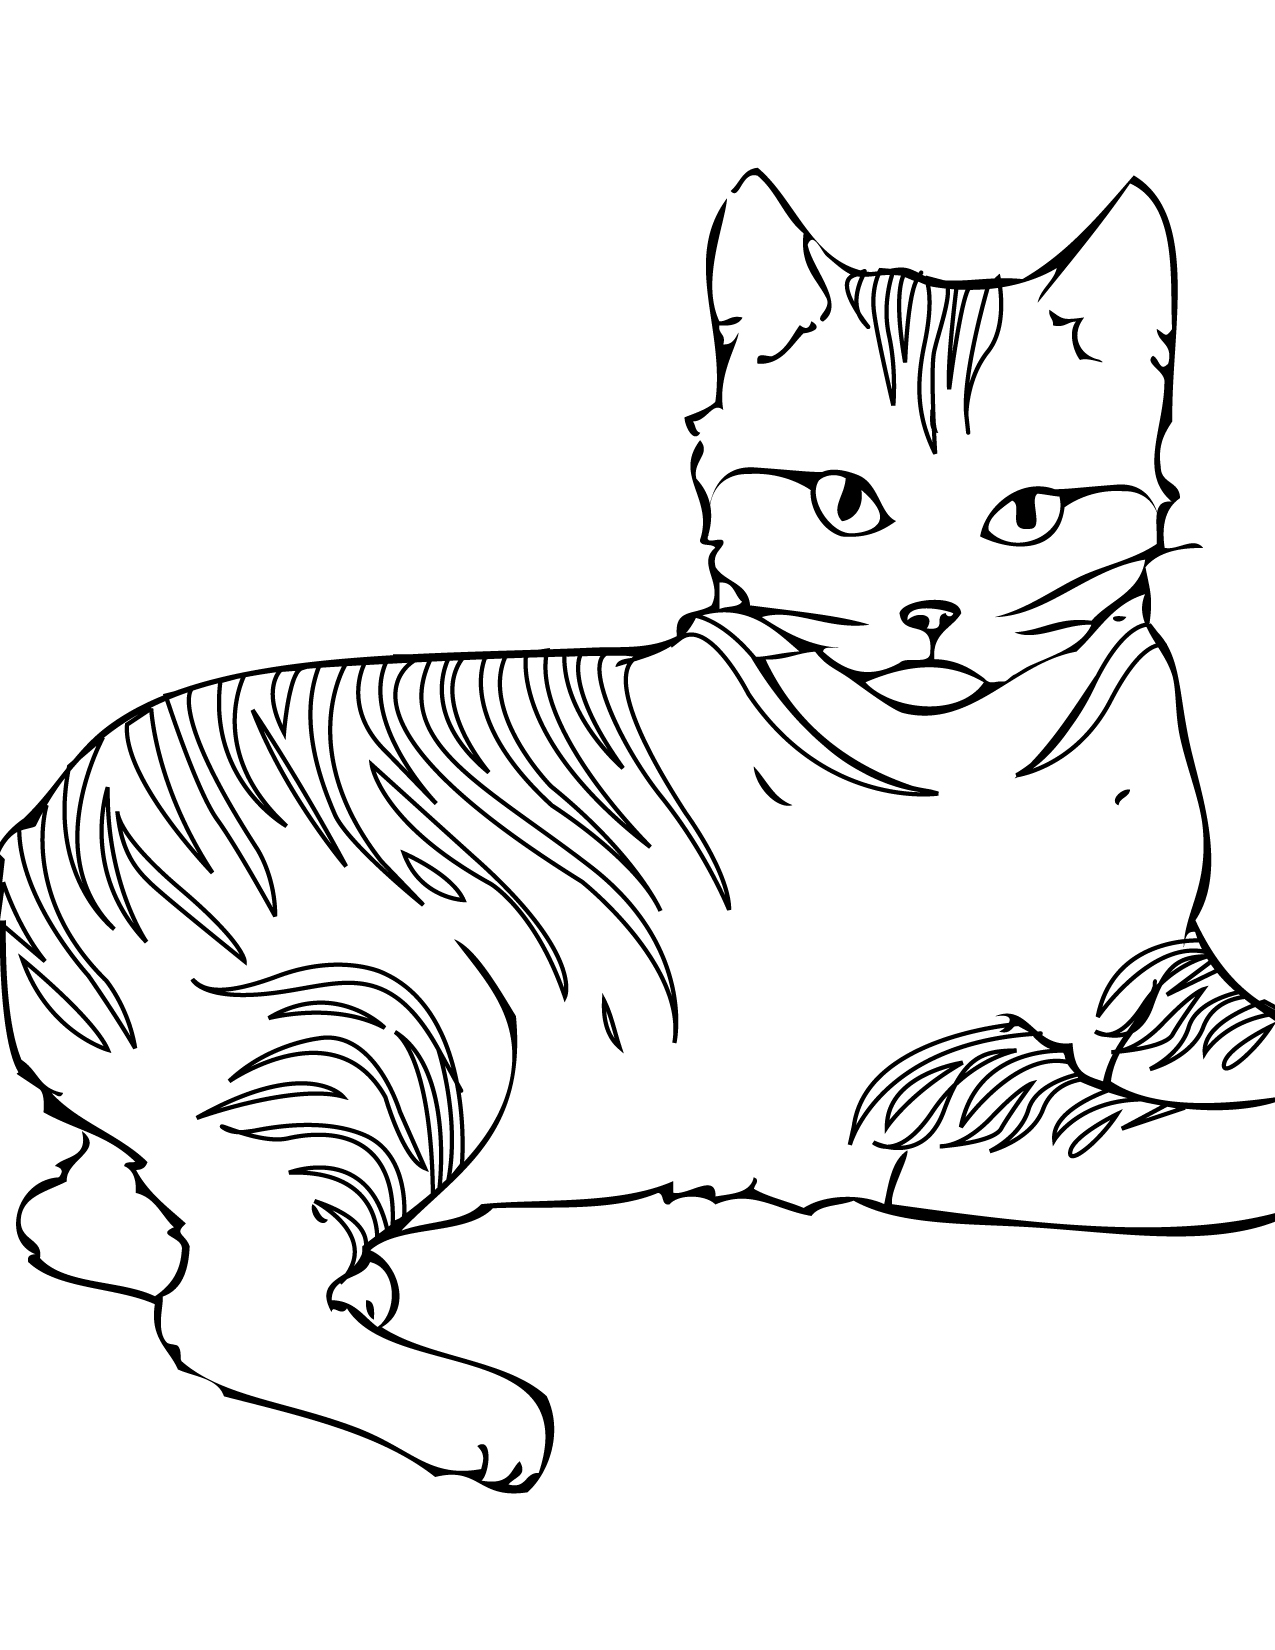 8 Images of Warrior Cats Coloring Pages Printable